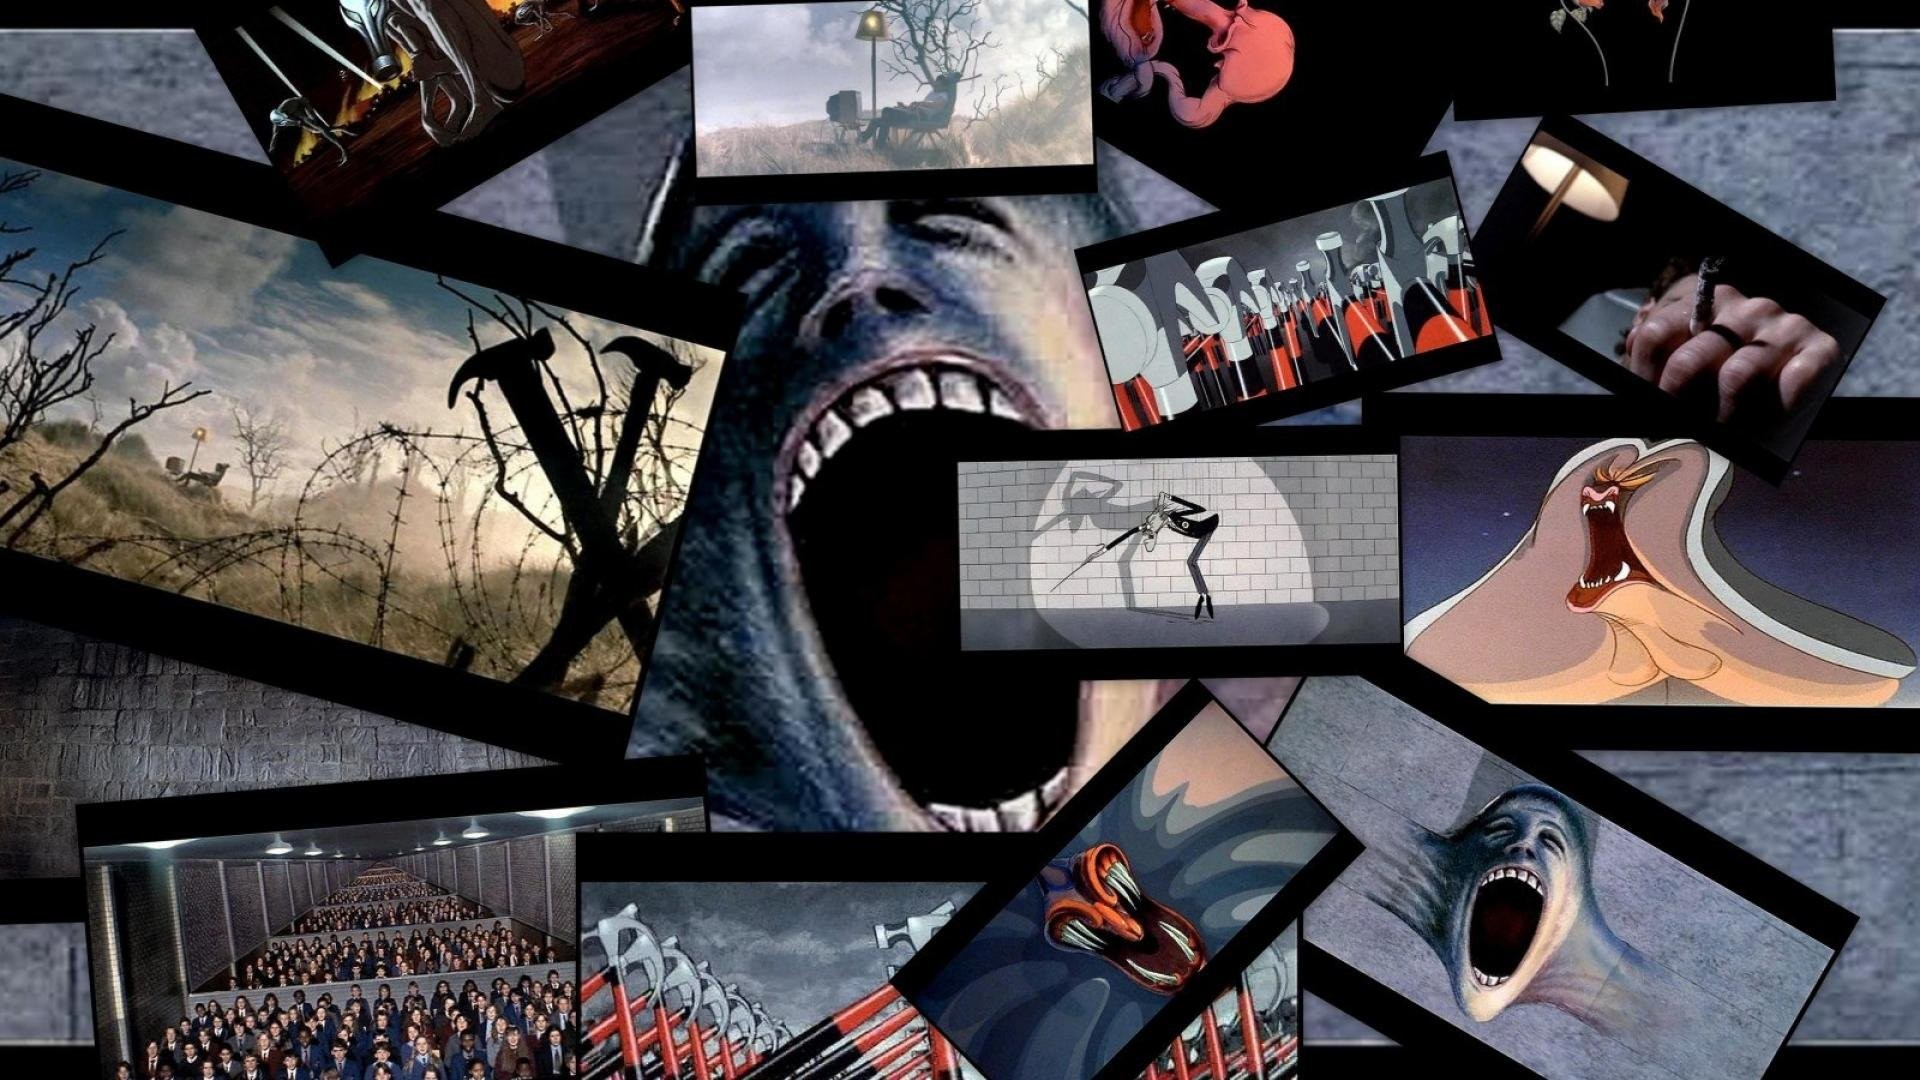 Pink floyd hd wallpapers 1080p 81 images - Pink floyd images high resolution ...